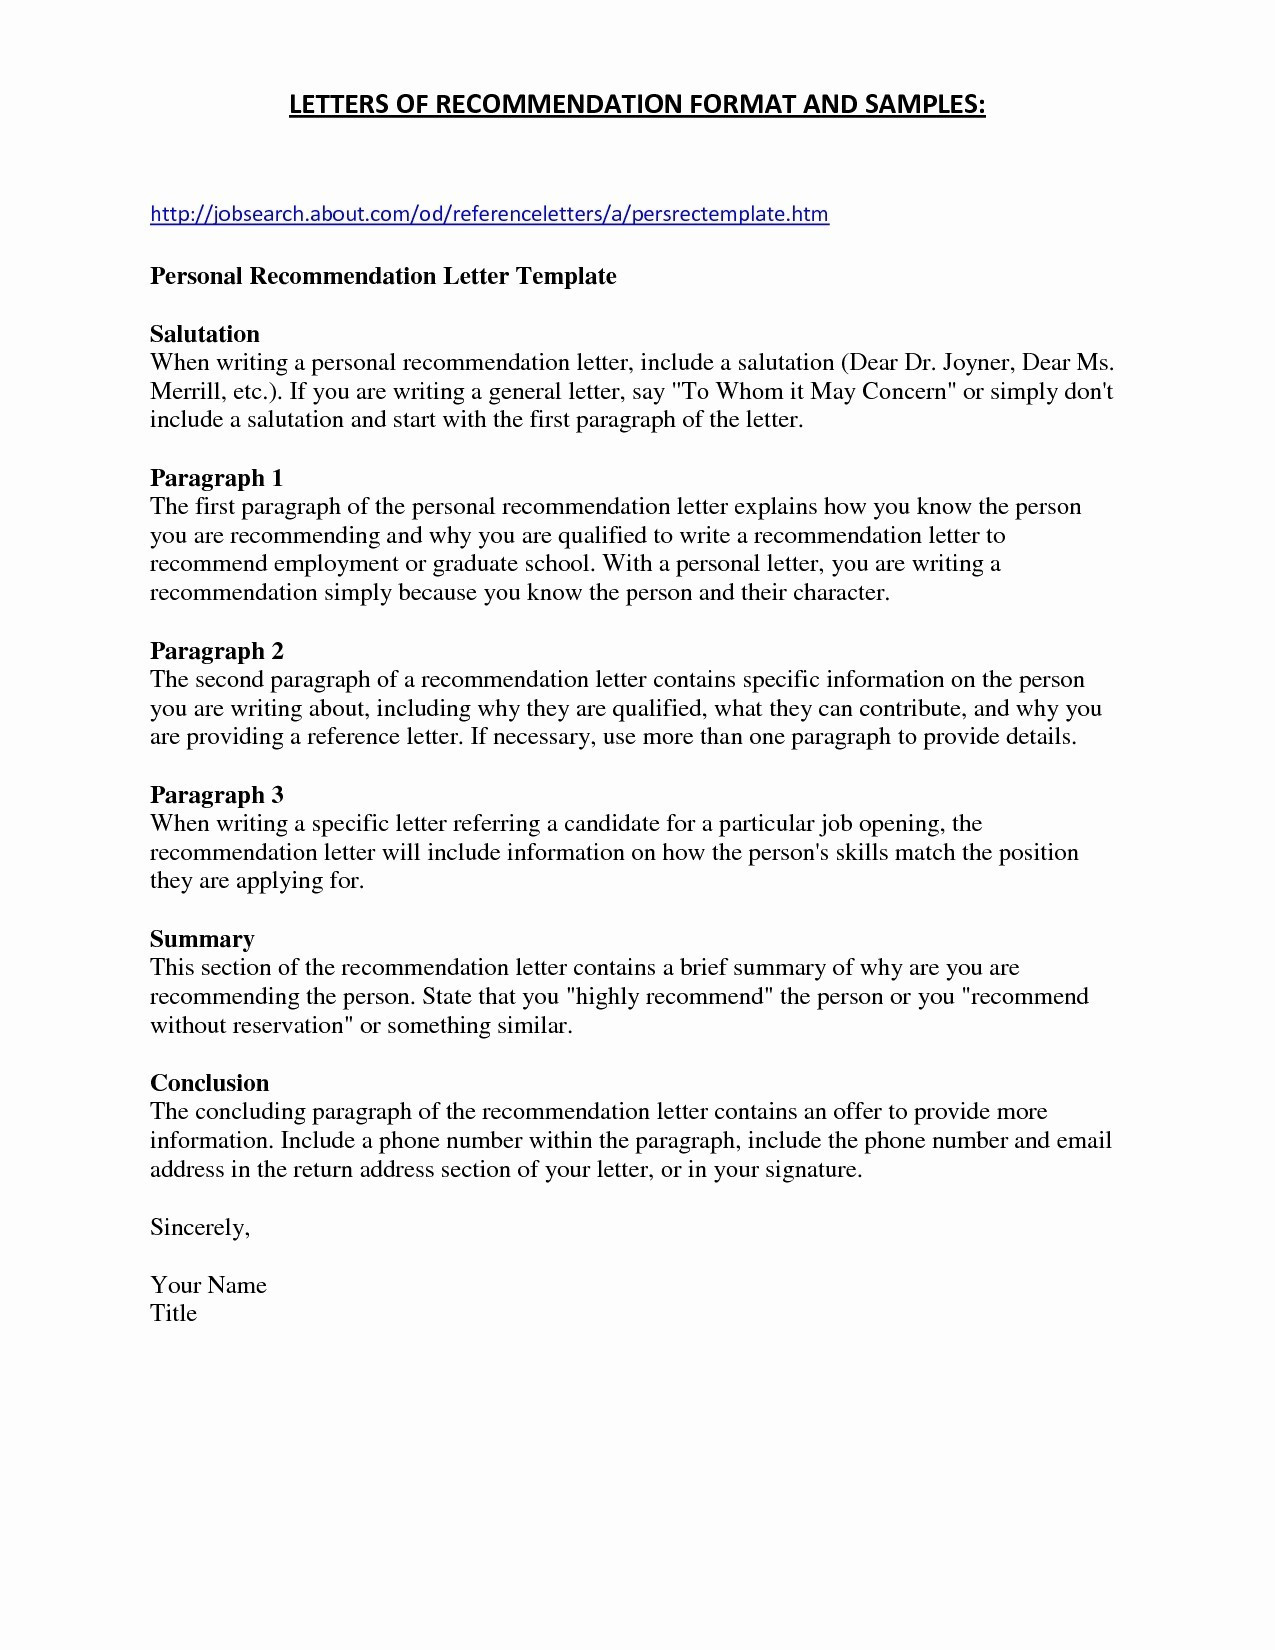 Business Analyst Resume Examples - Functional Business Analyst Resume New It Business Analyst Resume